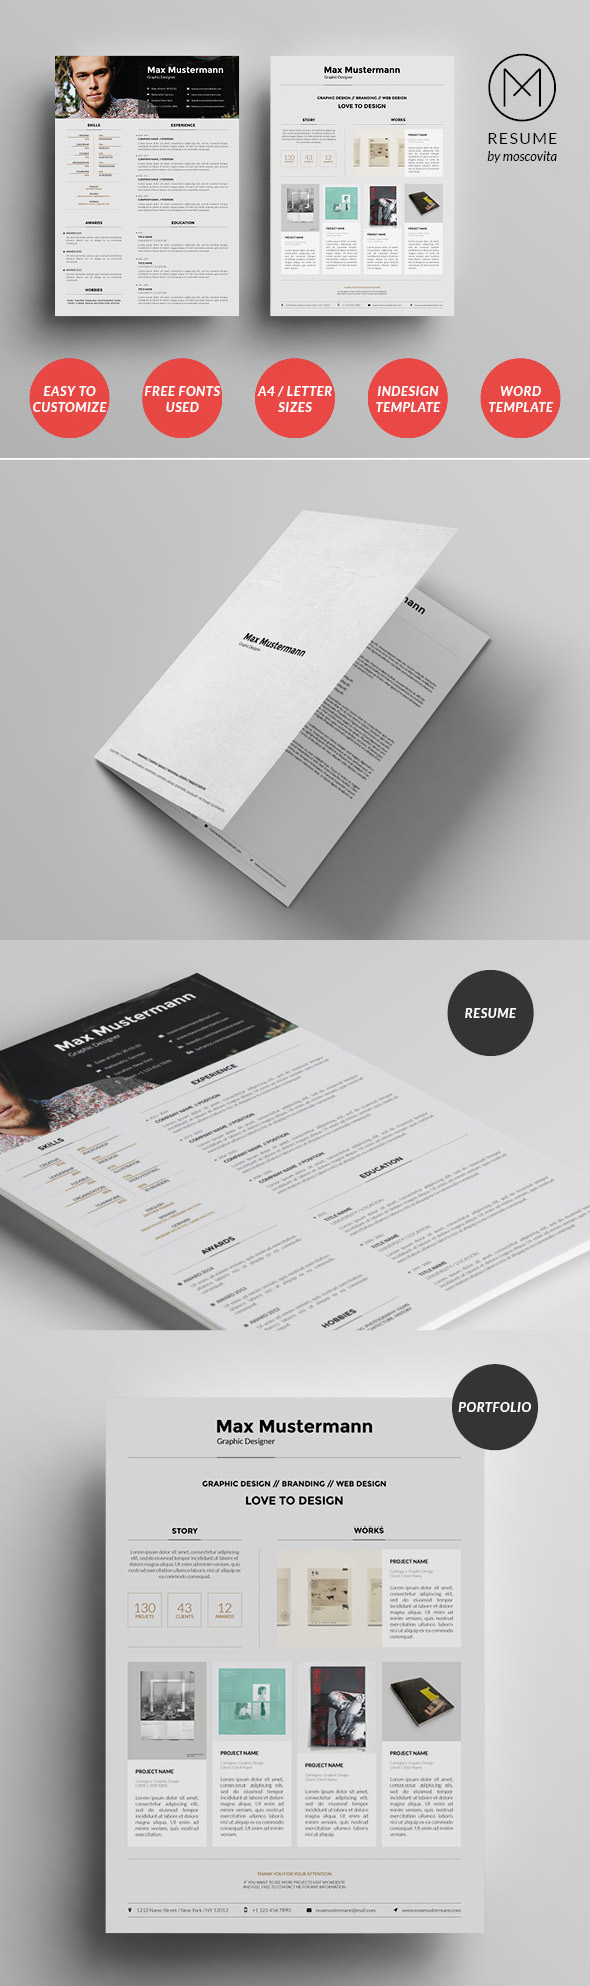 Structured Creative Resume Template Design